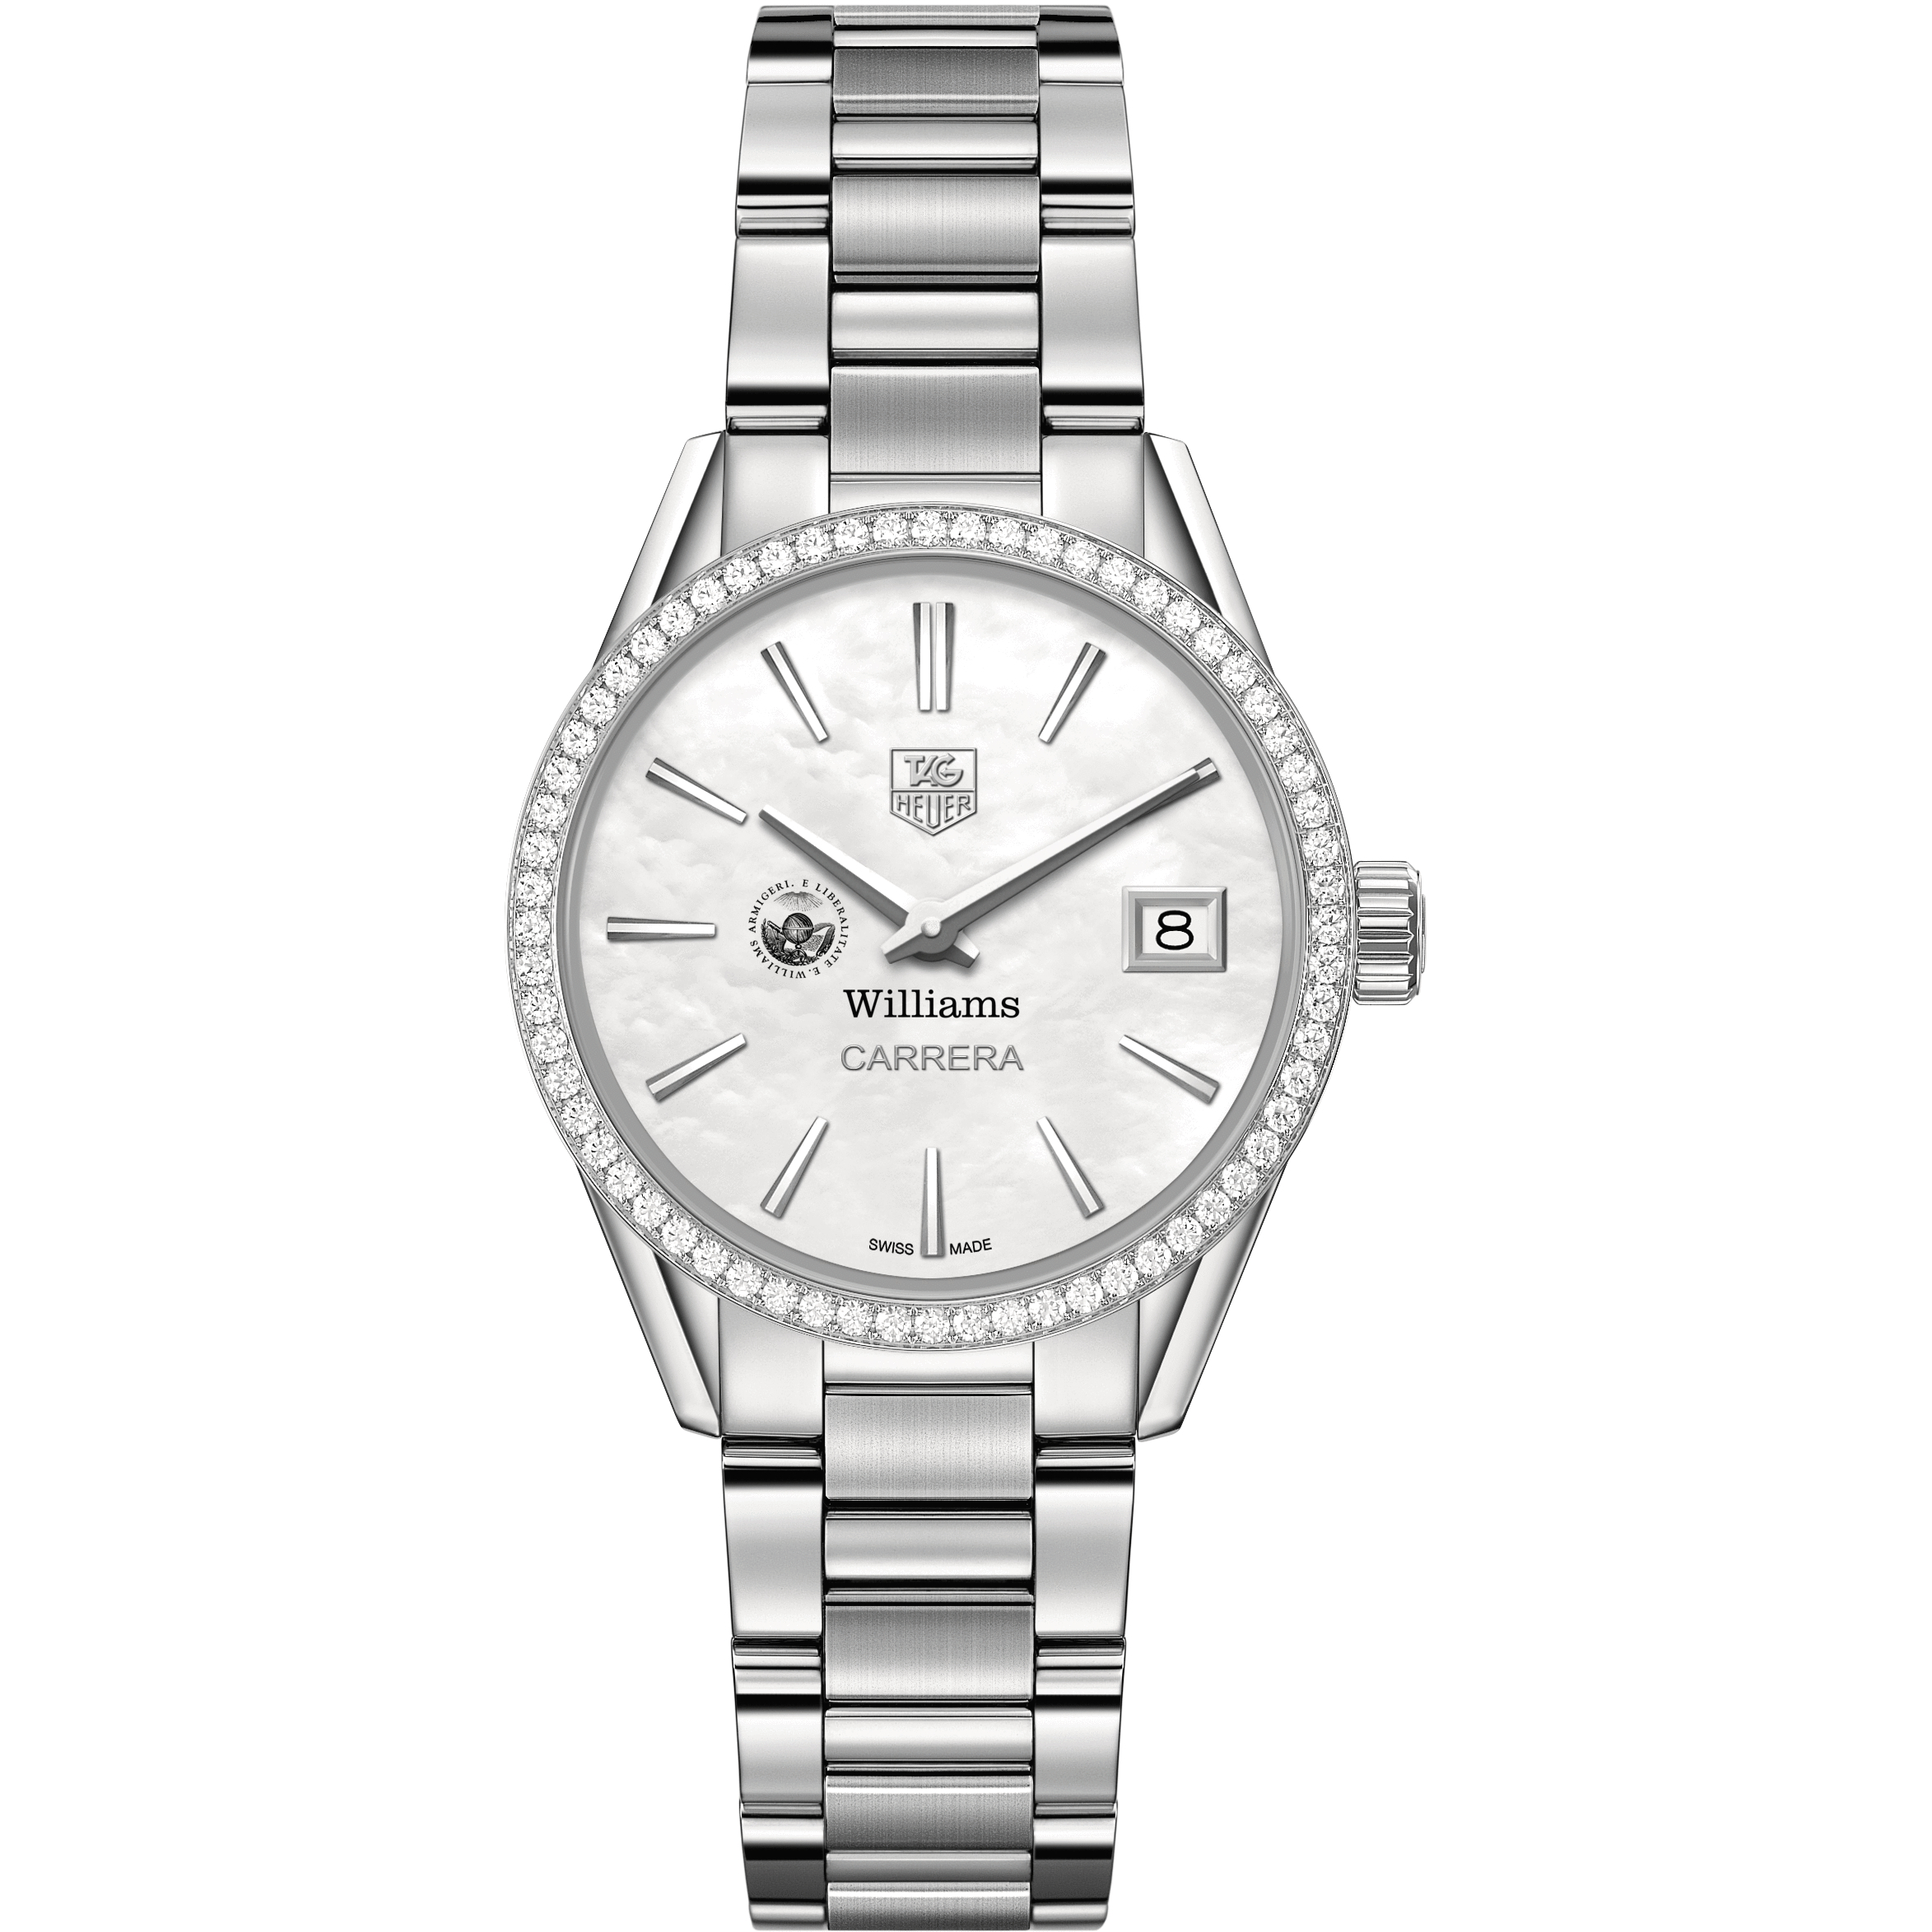 Williams College Women's TAG Heuer Steel Carrera with MOP Dial & Diamond Bezel - Image 2